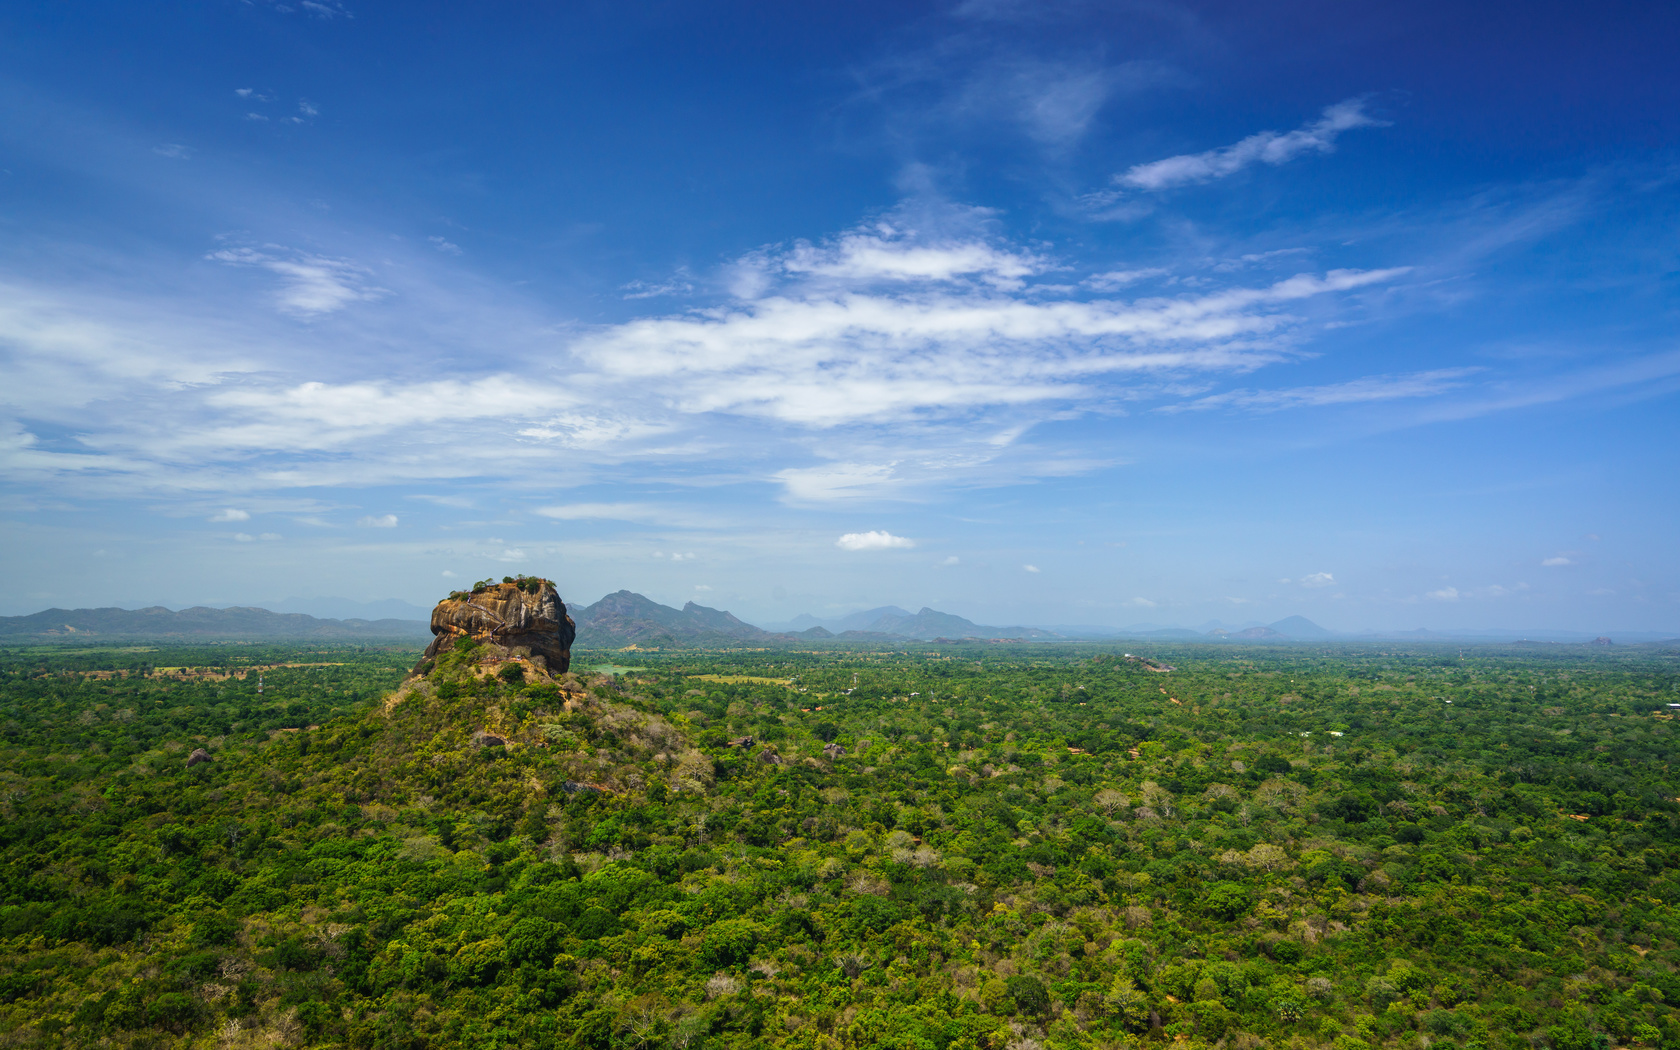 шри-ланка, горы, небо, sigiriya, matale district, central province, скала, природа